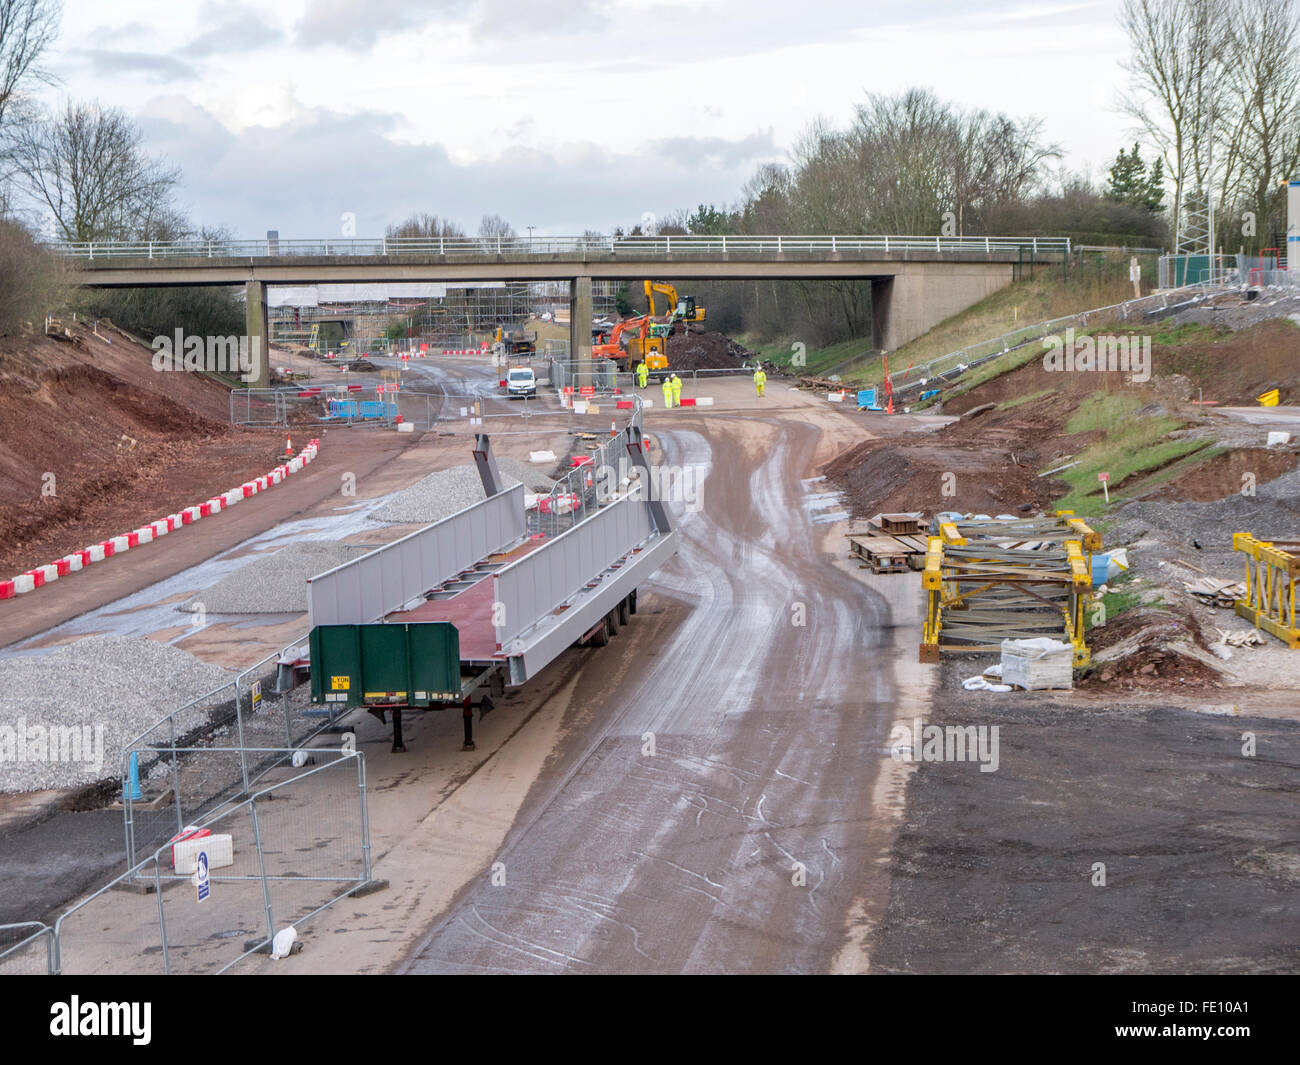 Part of a footbridge waiting to be lifted into place. - Stock Image